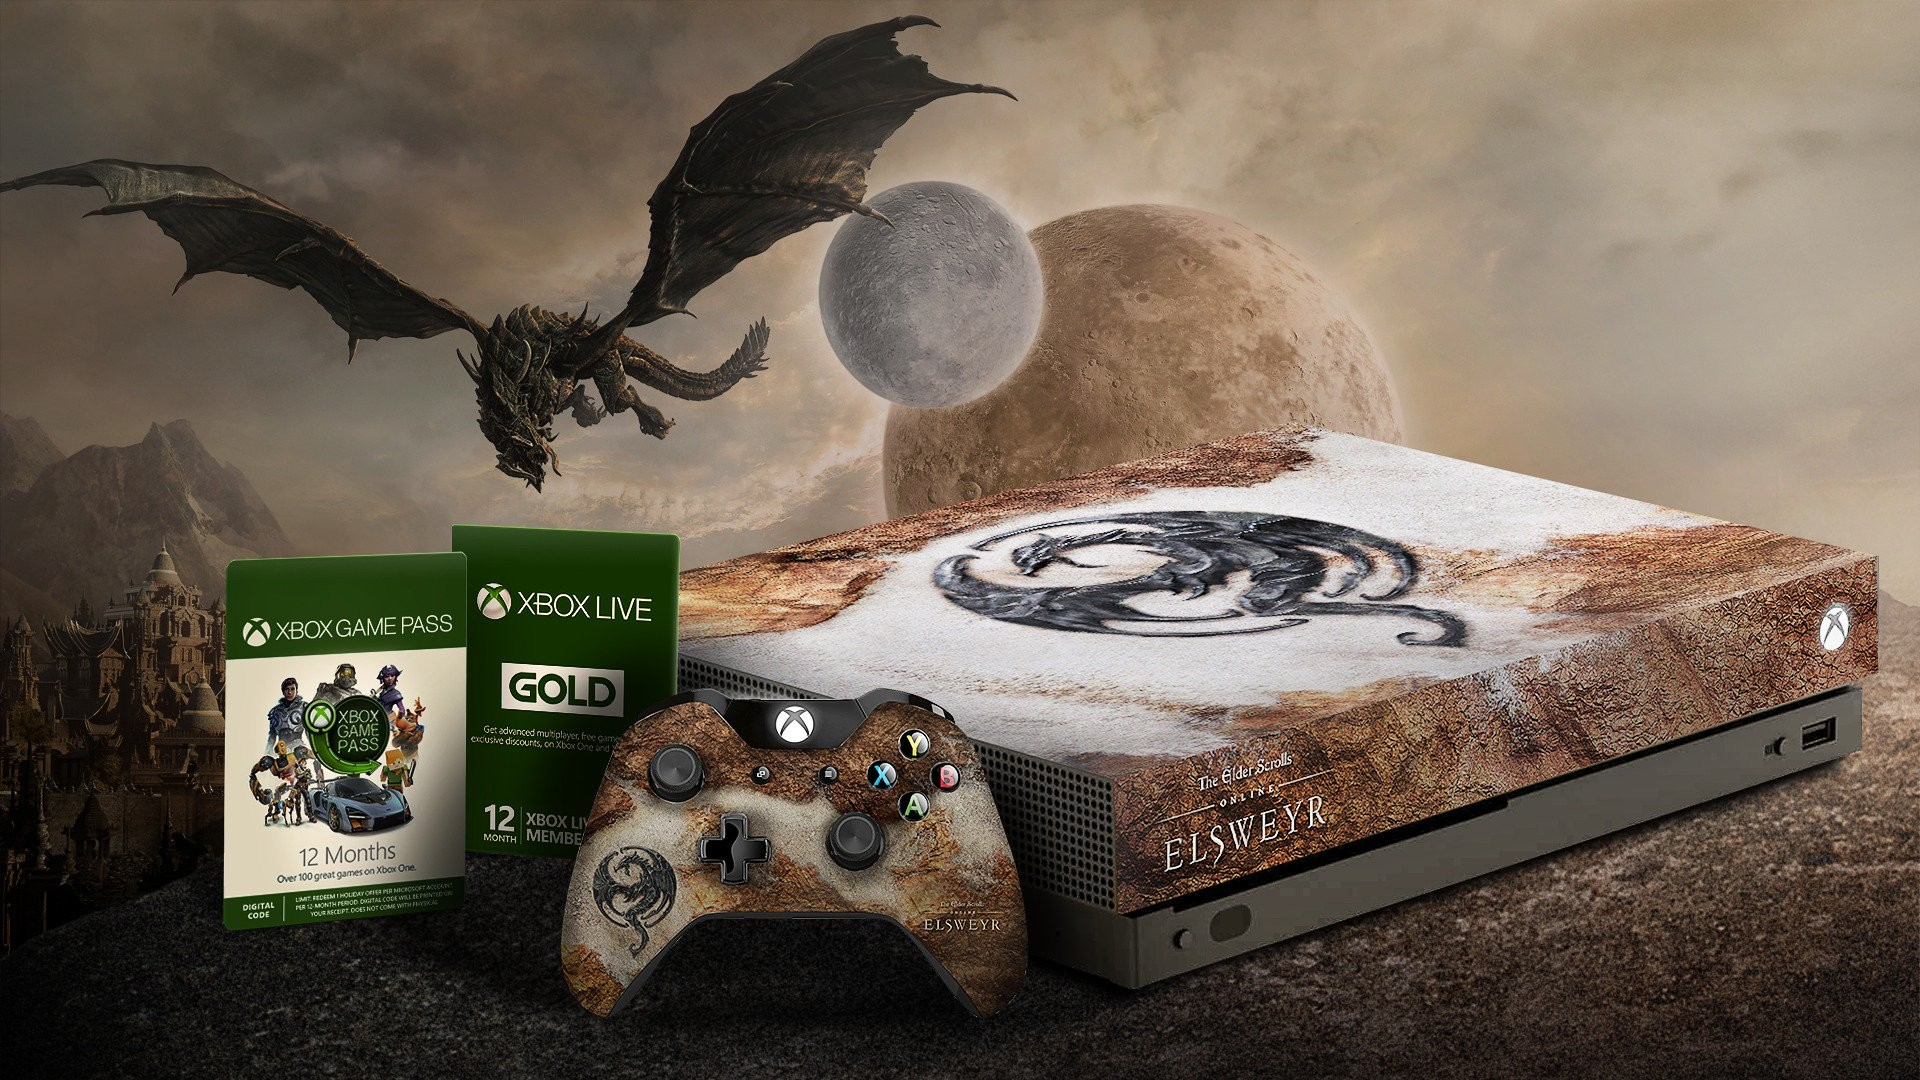 You can win an Elsweyr Xbox One X a year of Game Pass and Xbox 1920x1080